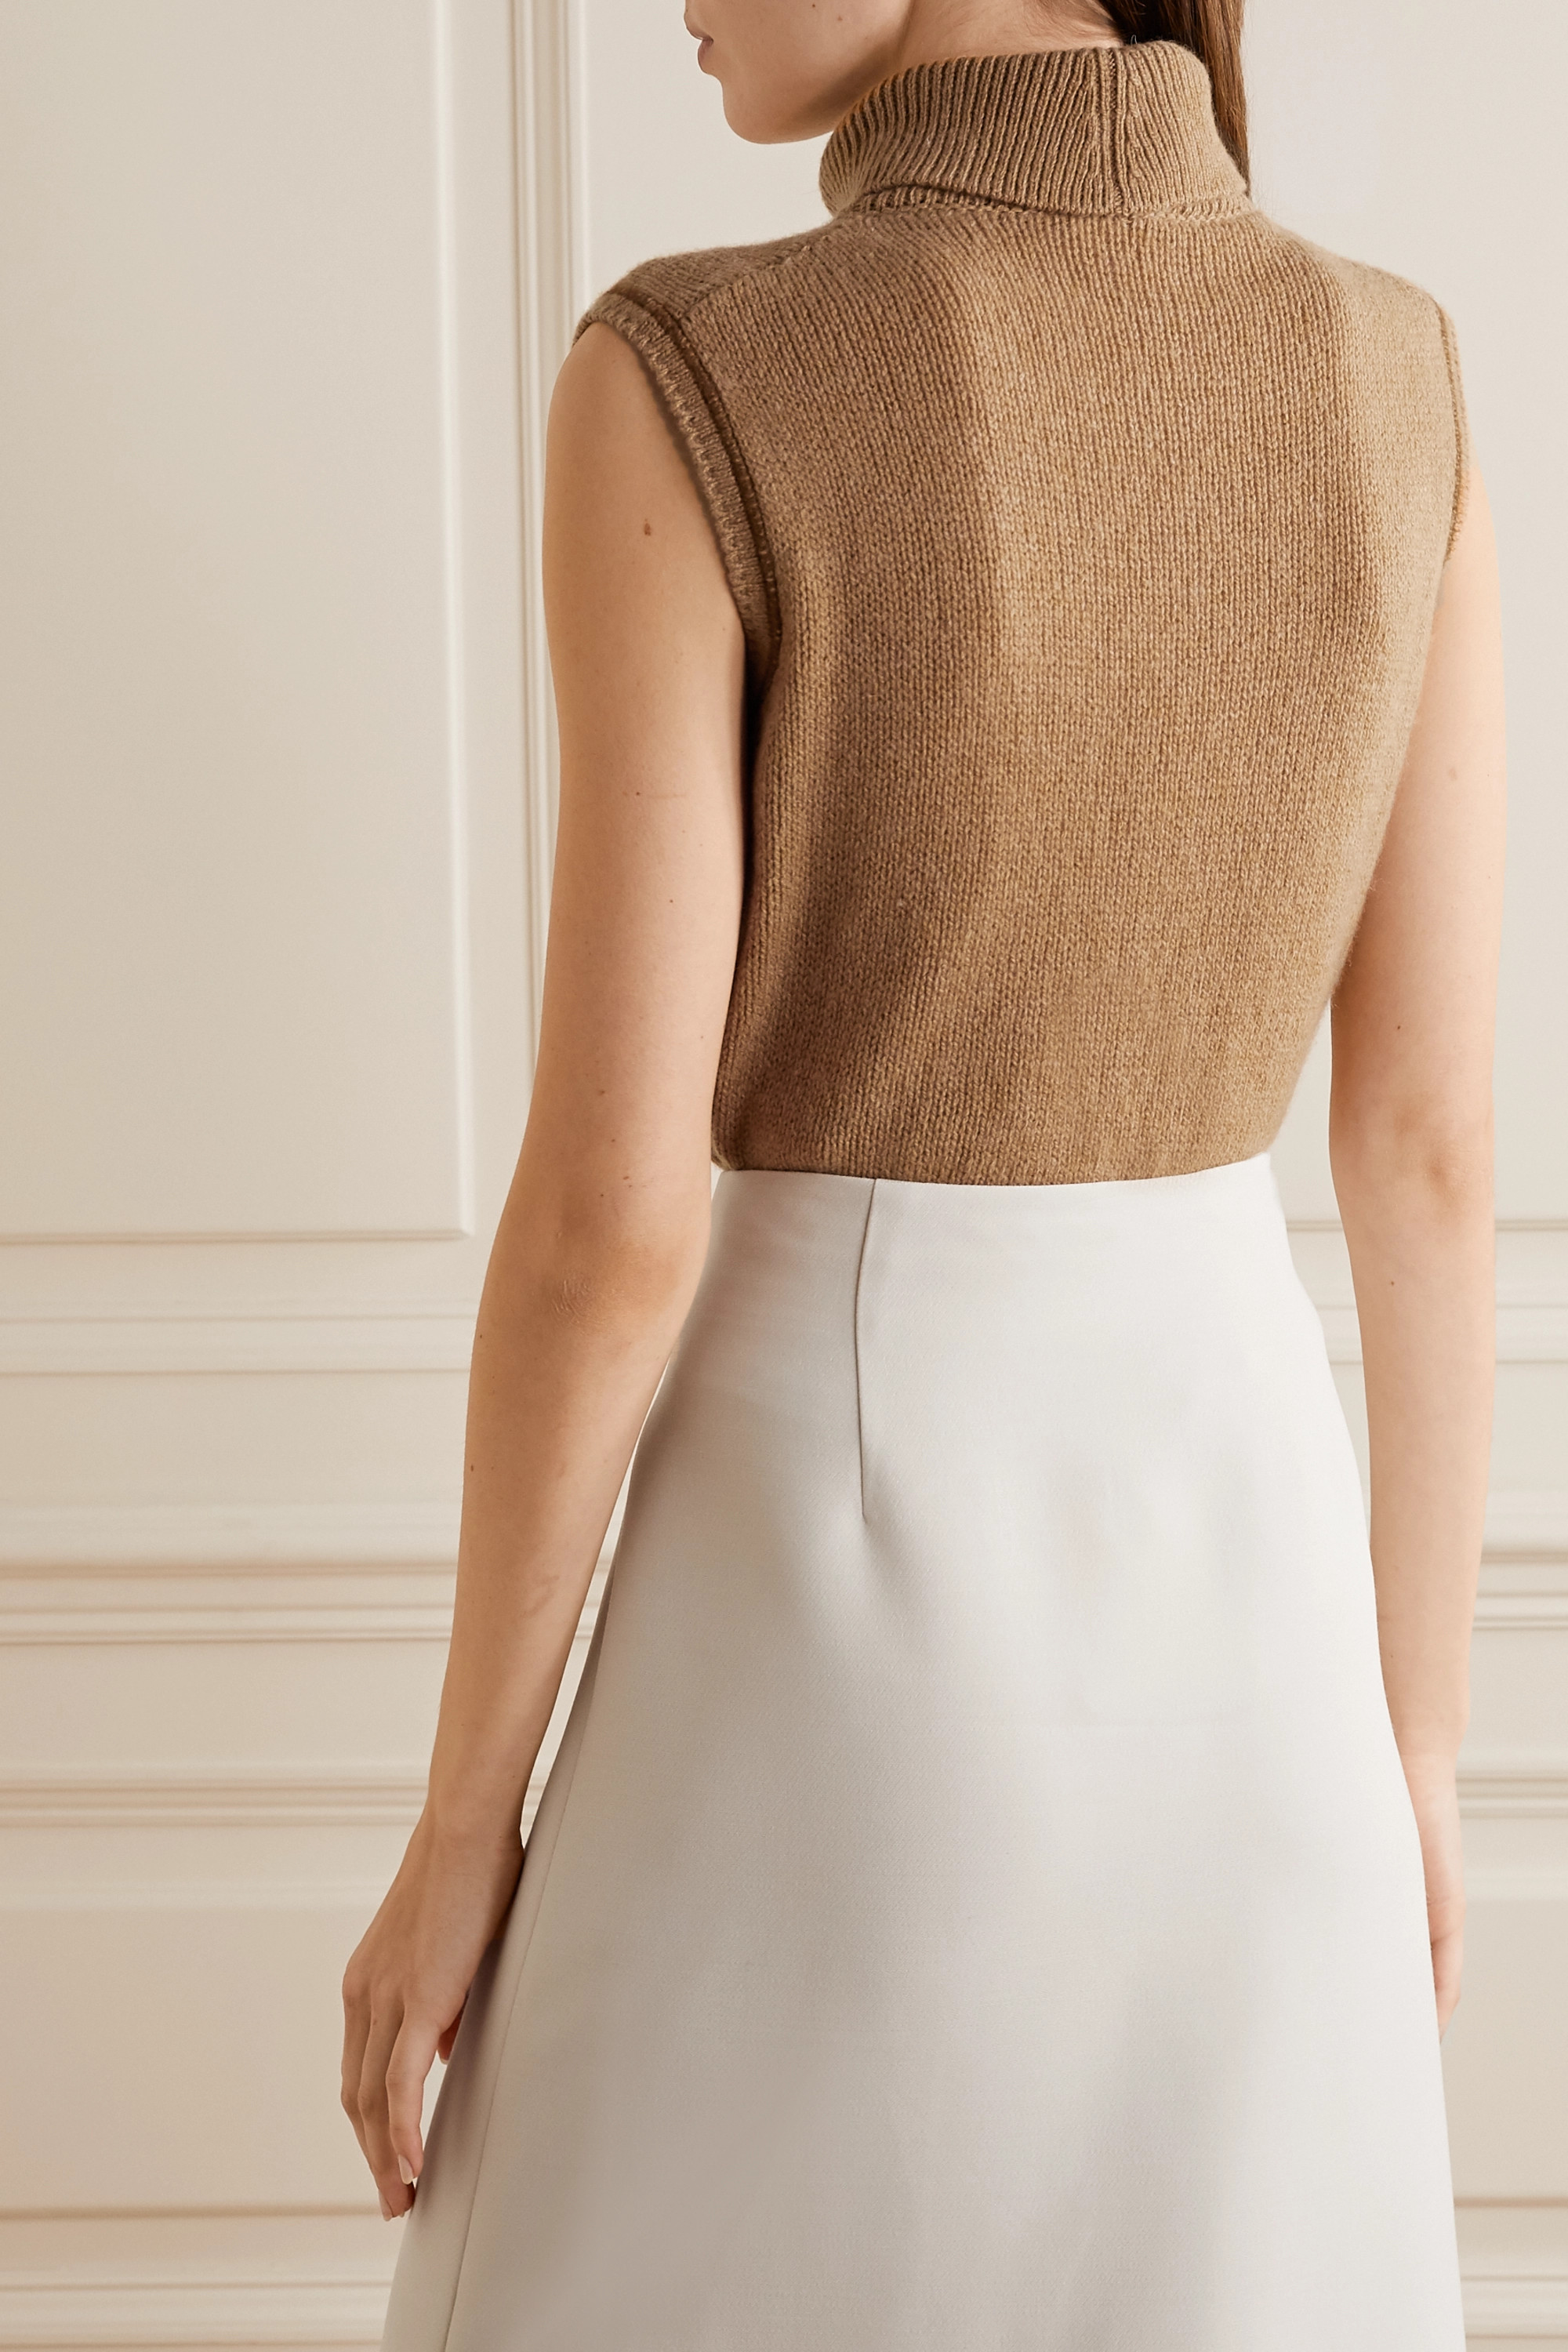 The Row Giselle cashmere turtleneck sweater